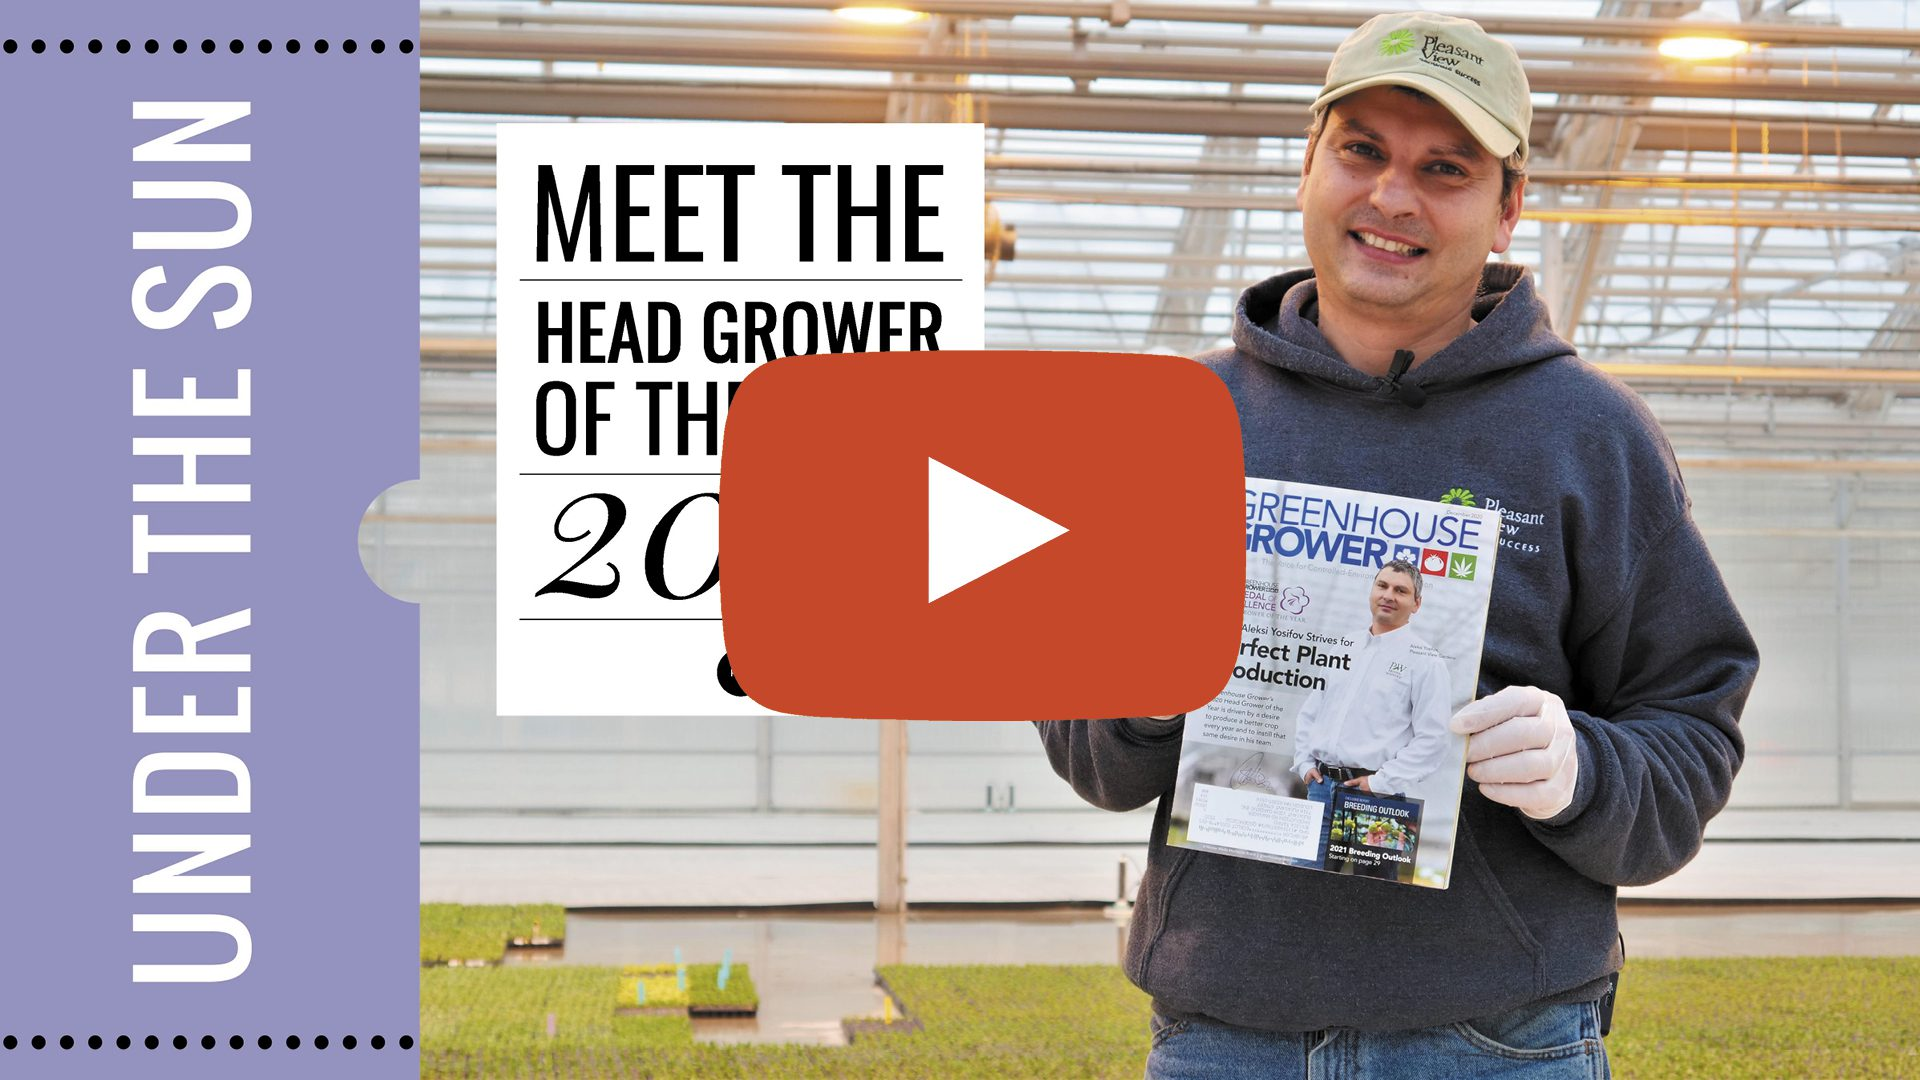 Head Grower of the Year